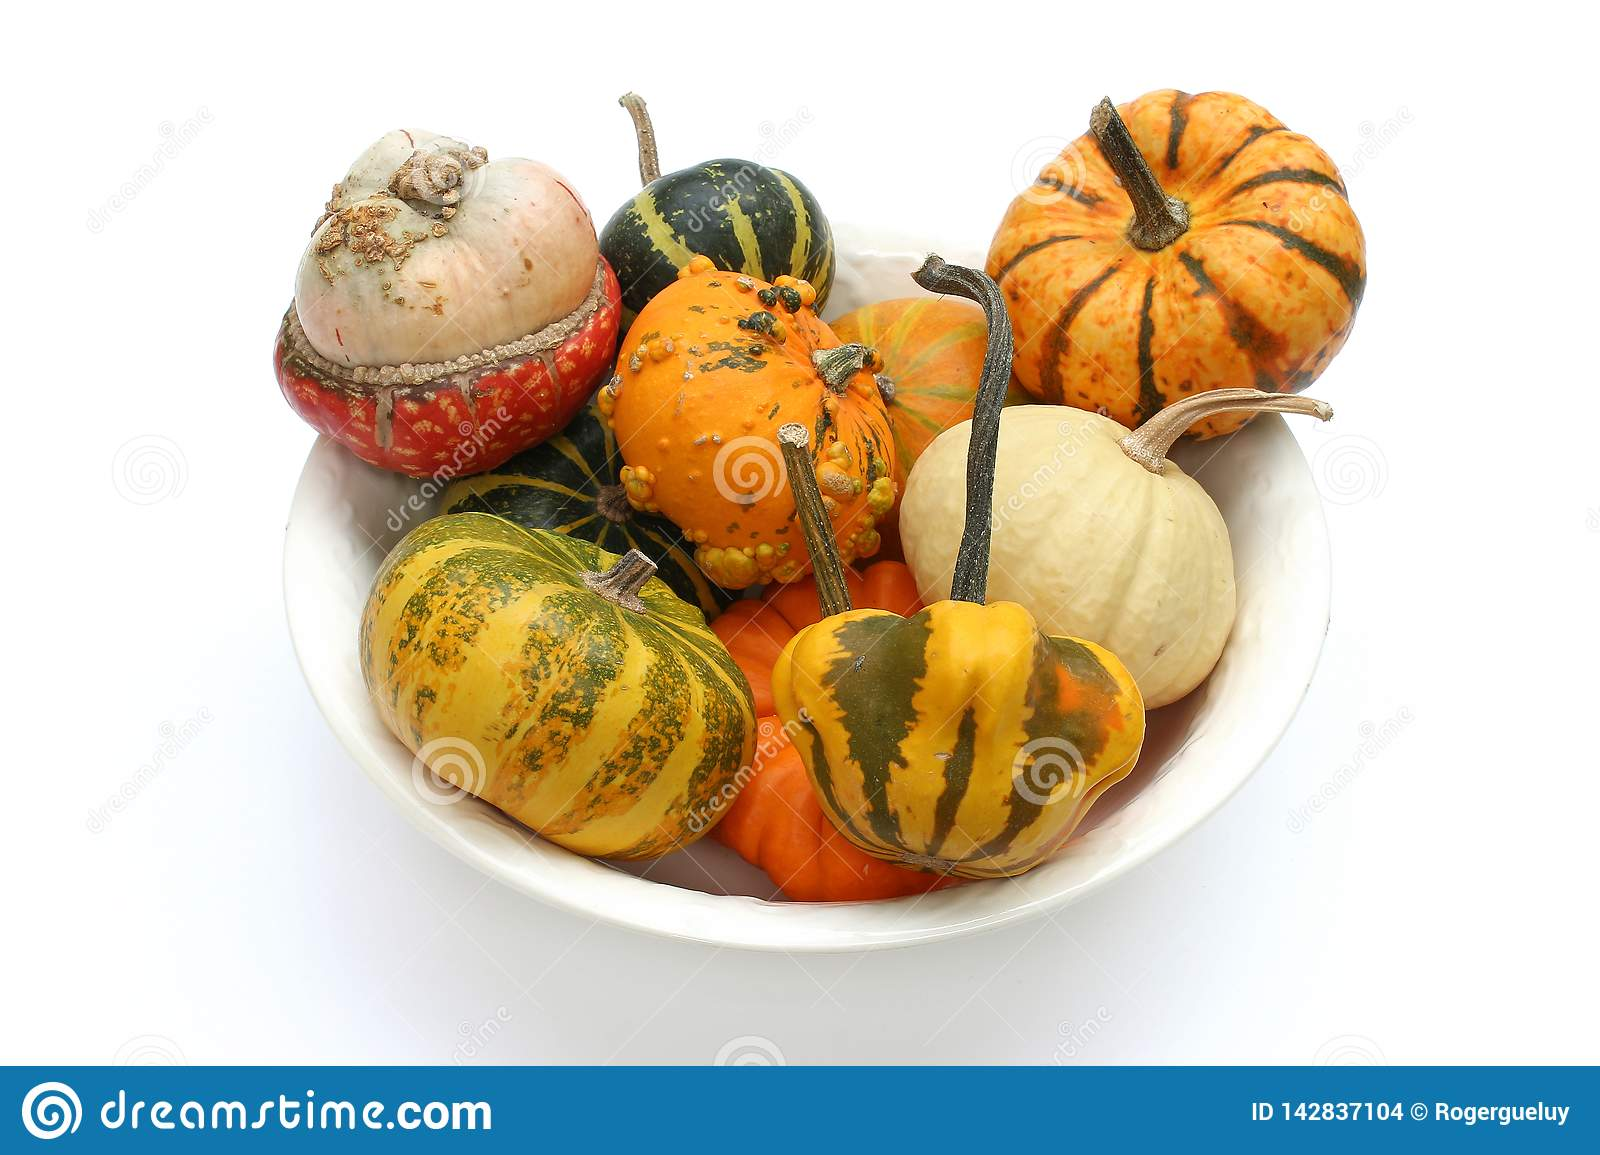 Colorful varieties of pumpkins, gourds and squashes on a white background